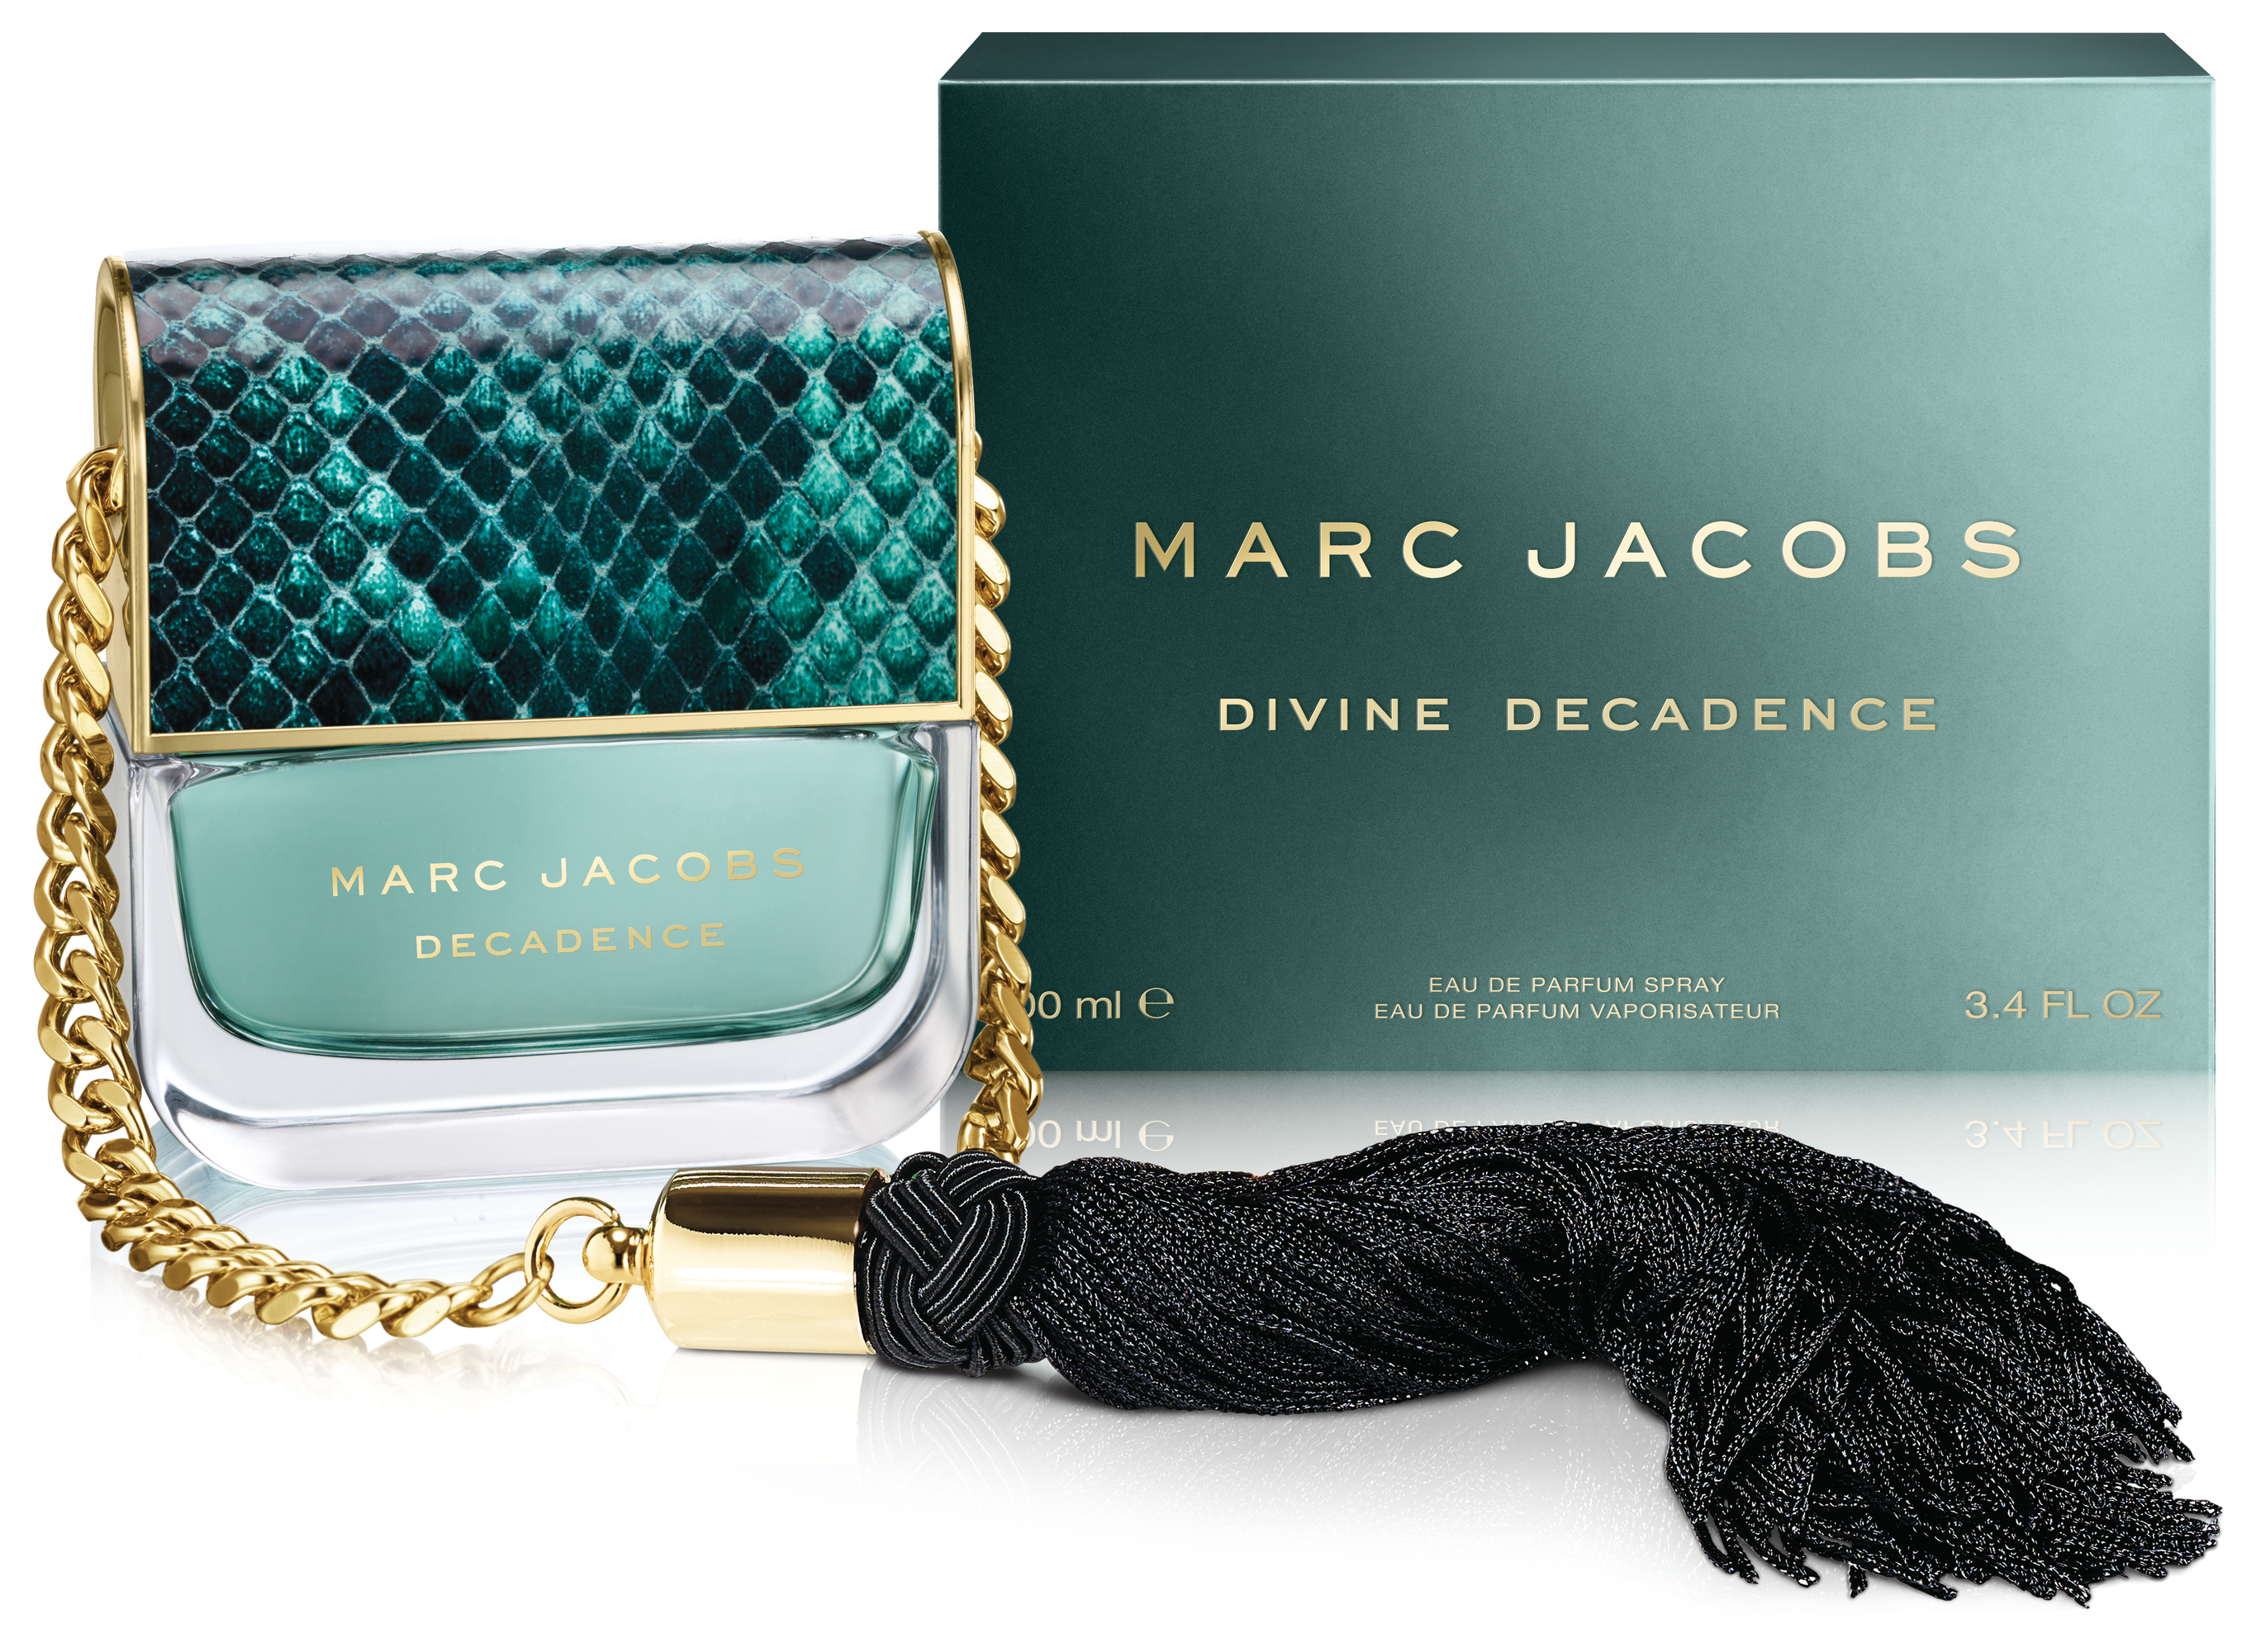 Nowy zapach - Marc Jacobs Divine Decadence